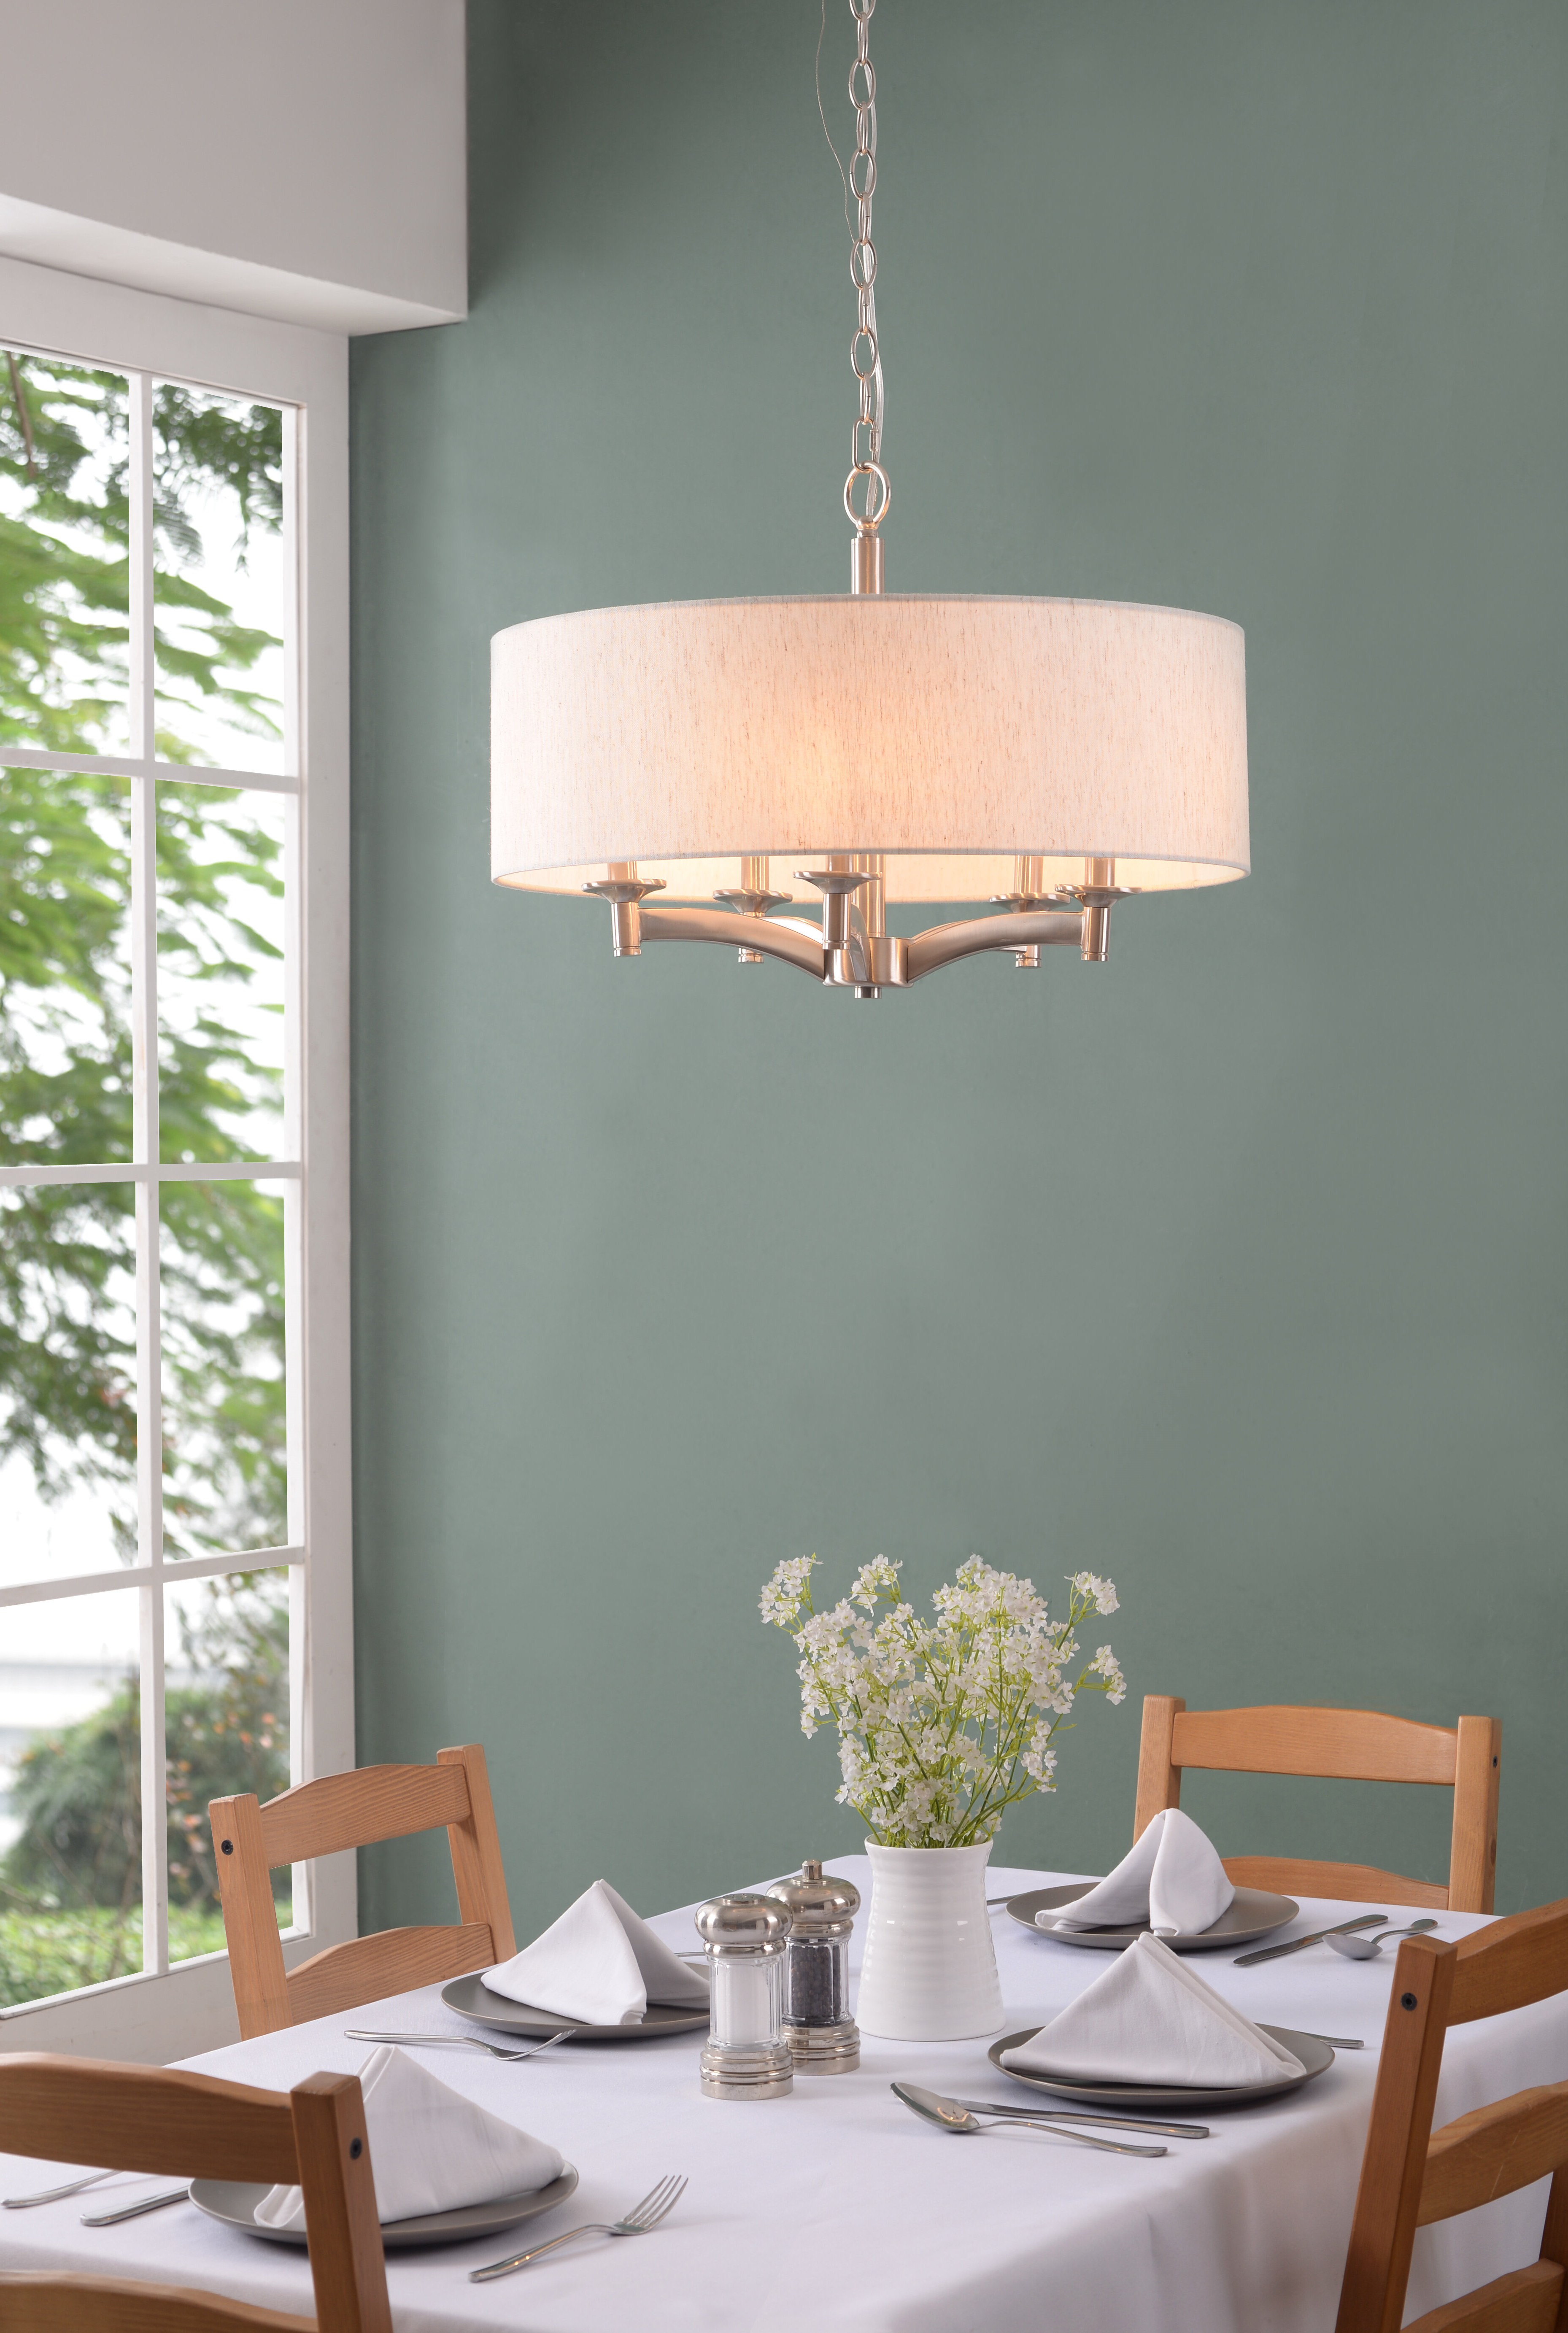 Best And Newest Harlan 5 Light Drum Chandeliers In Harlan 5 Light Drum Chandelier (View 4 of 25)